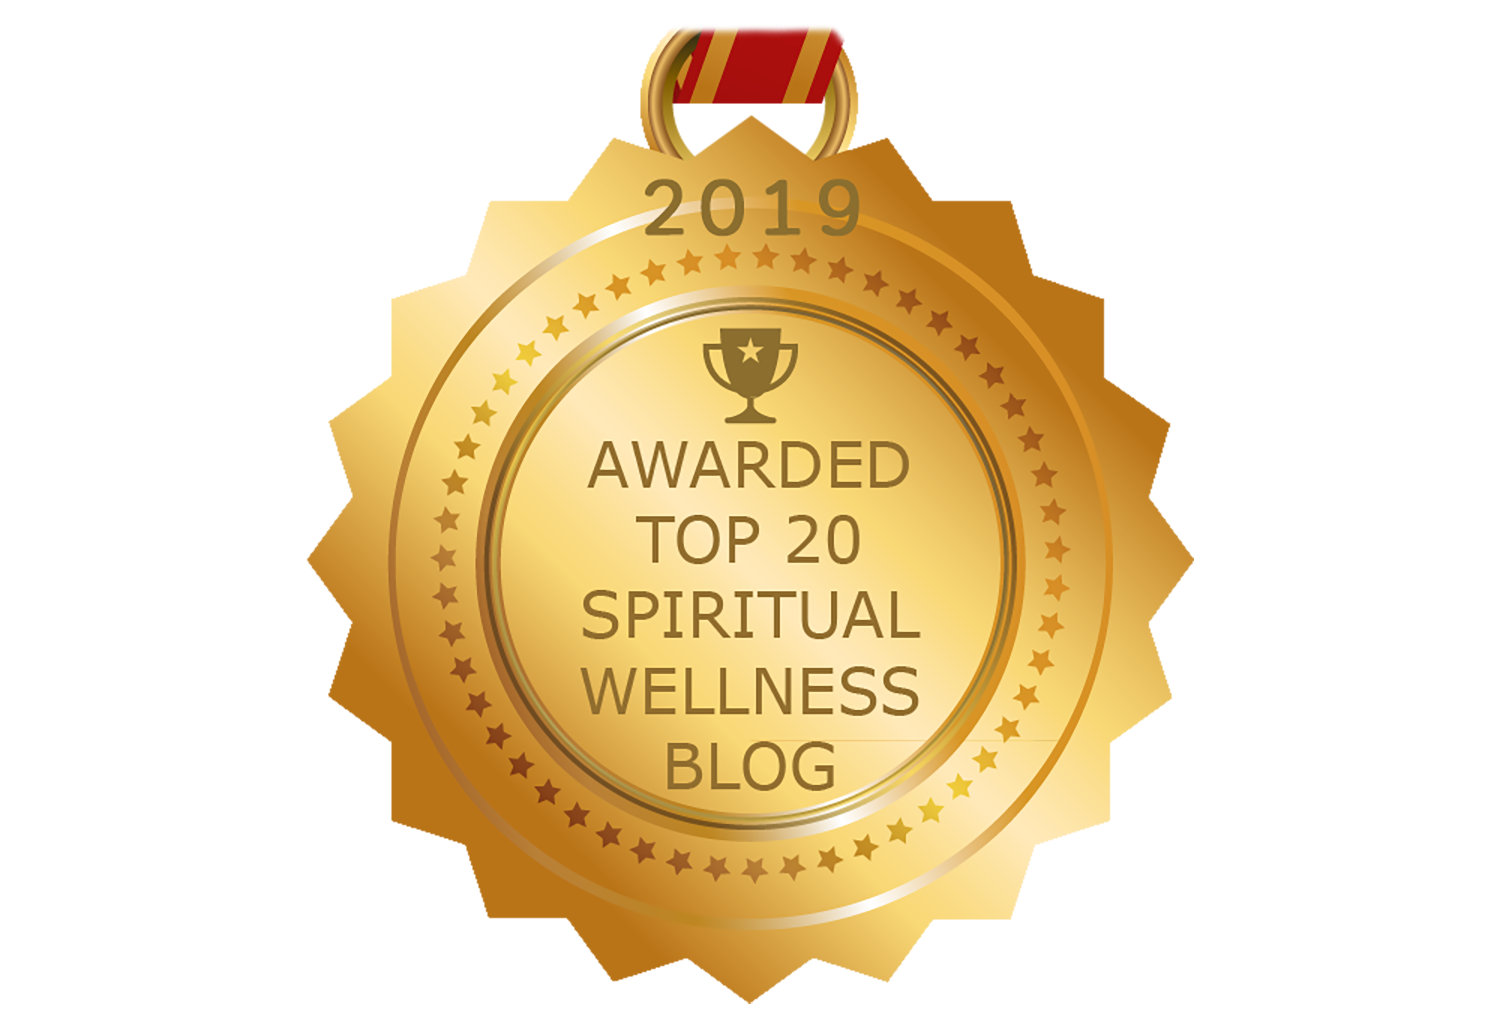 Top 20 spiritual wellness blog 2019 FINAL copy.png